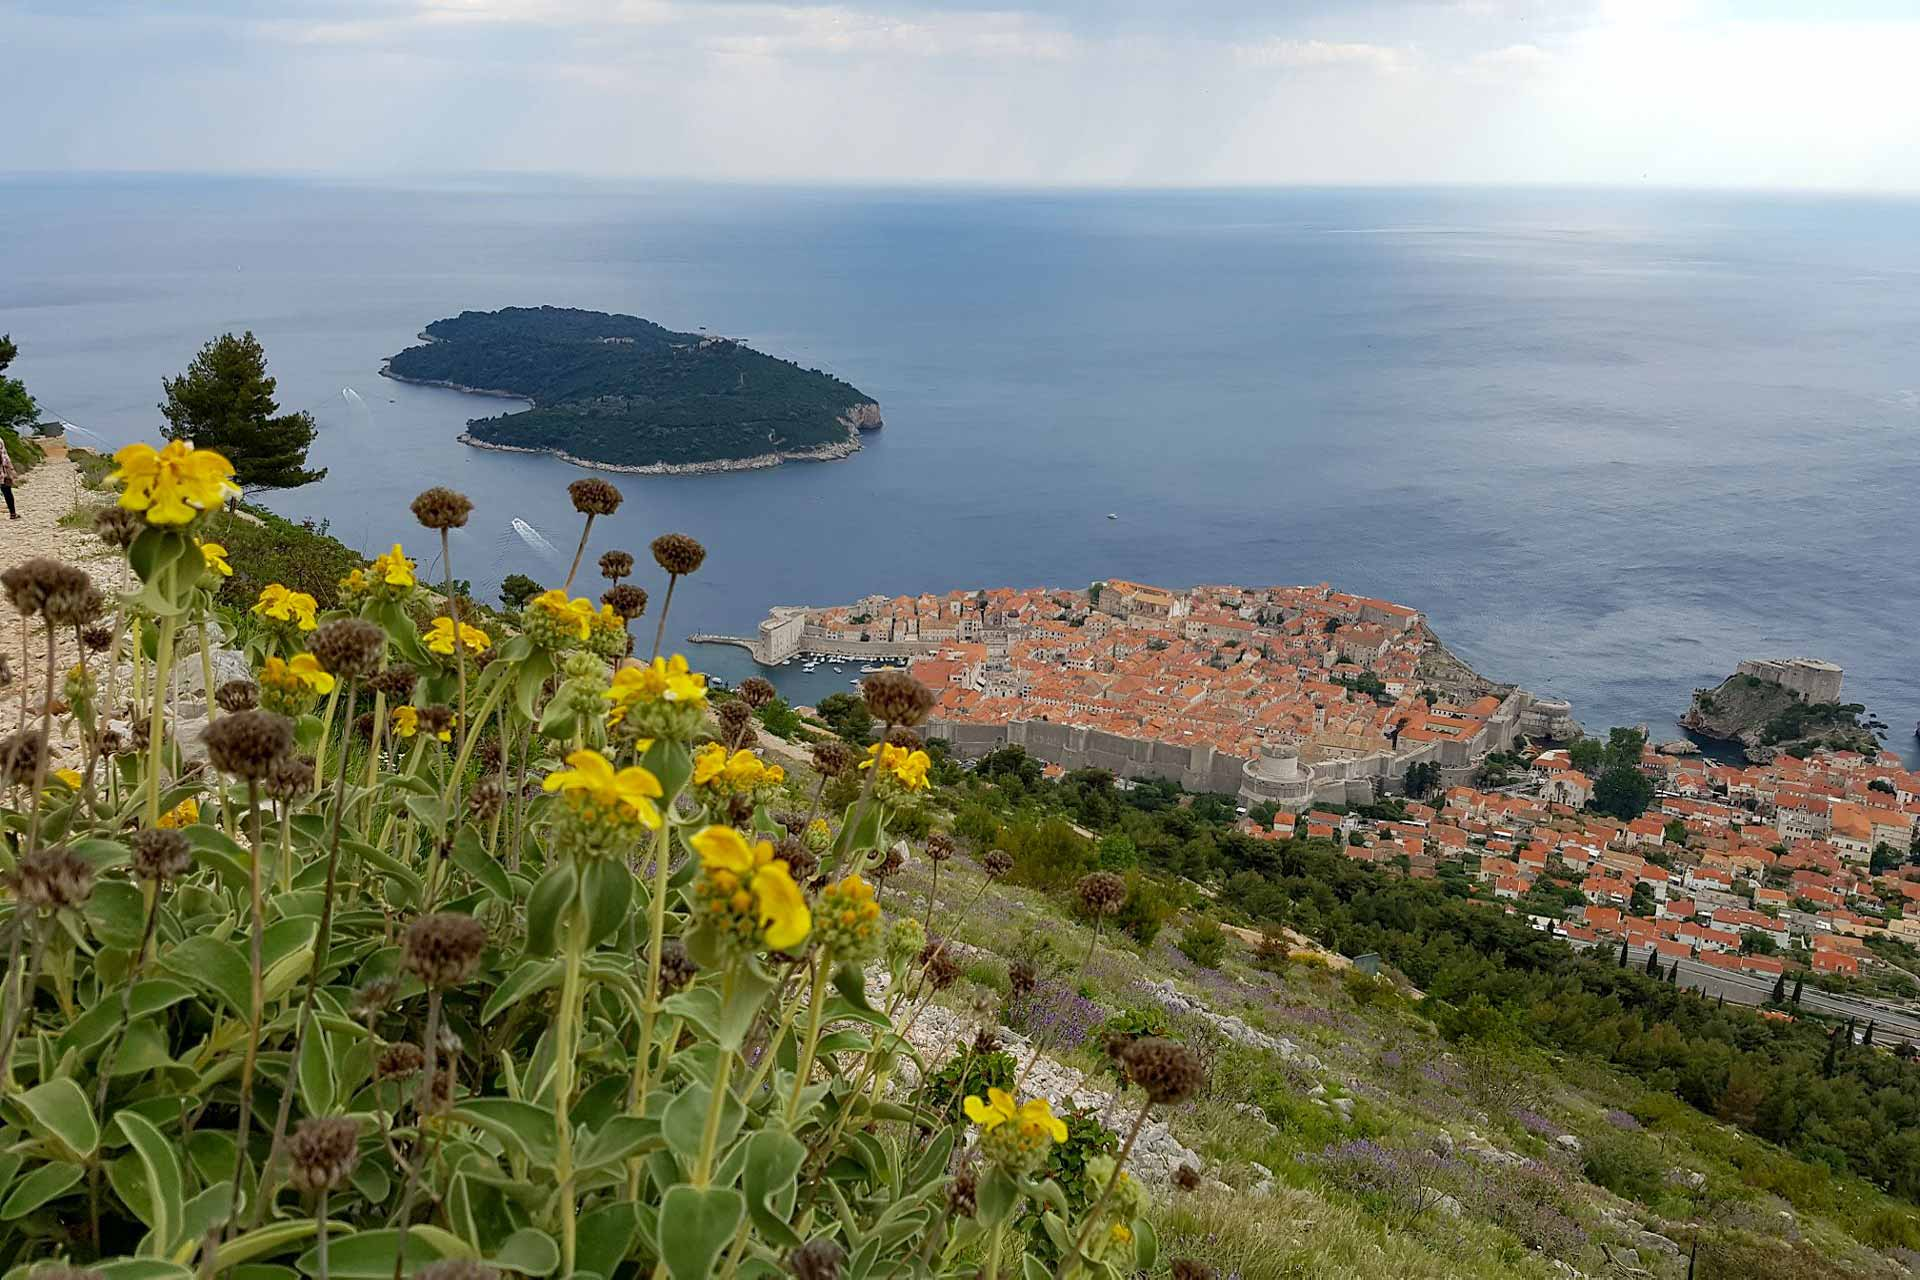 Panoramic view of Dubrovnik area